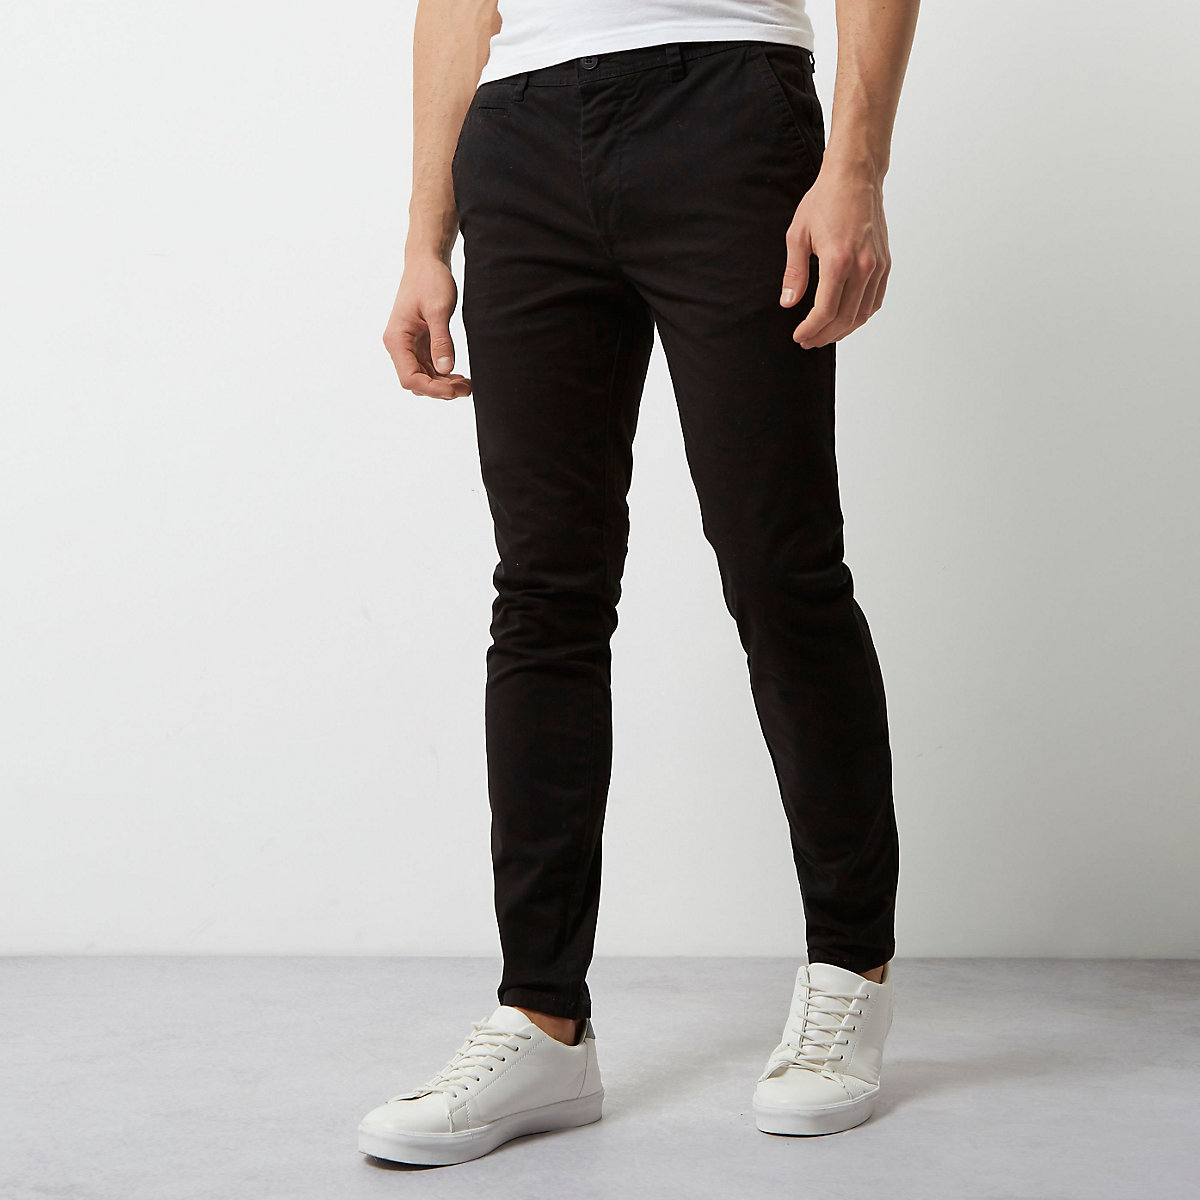 Black super skinny casual chino trousers